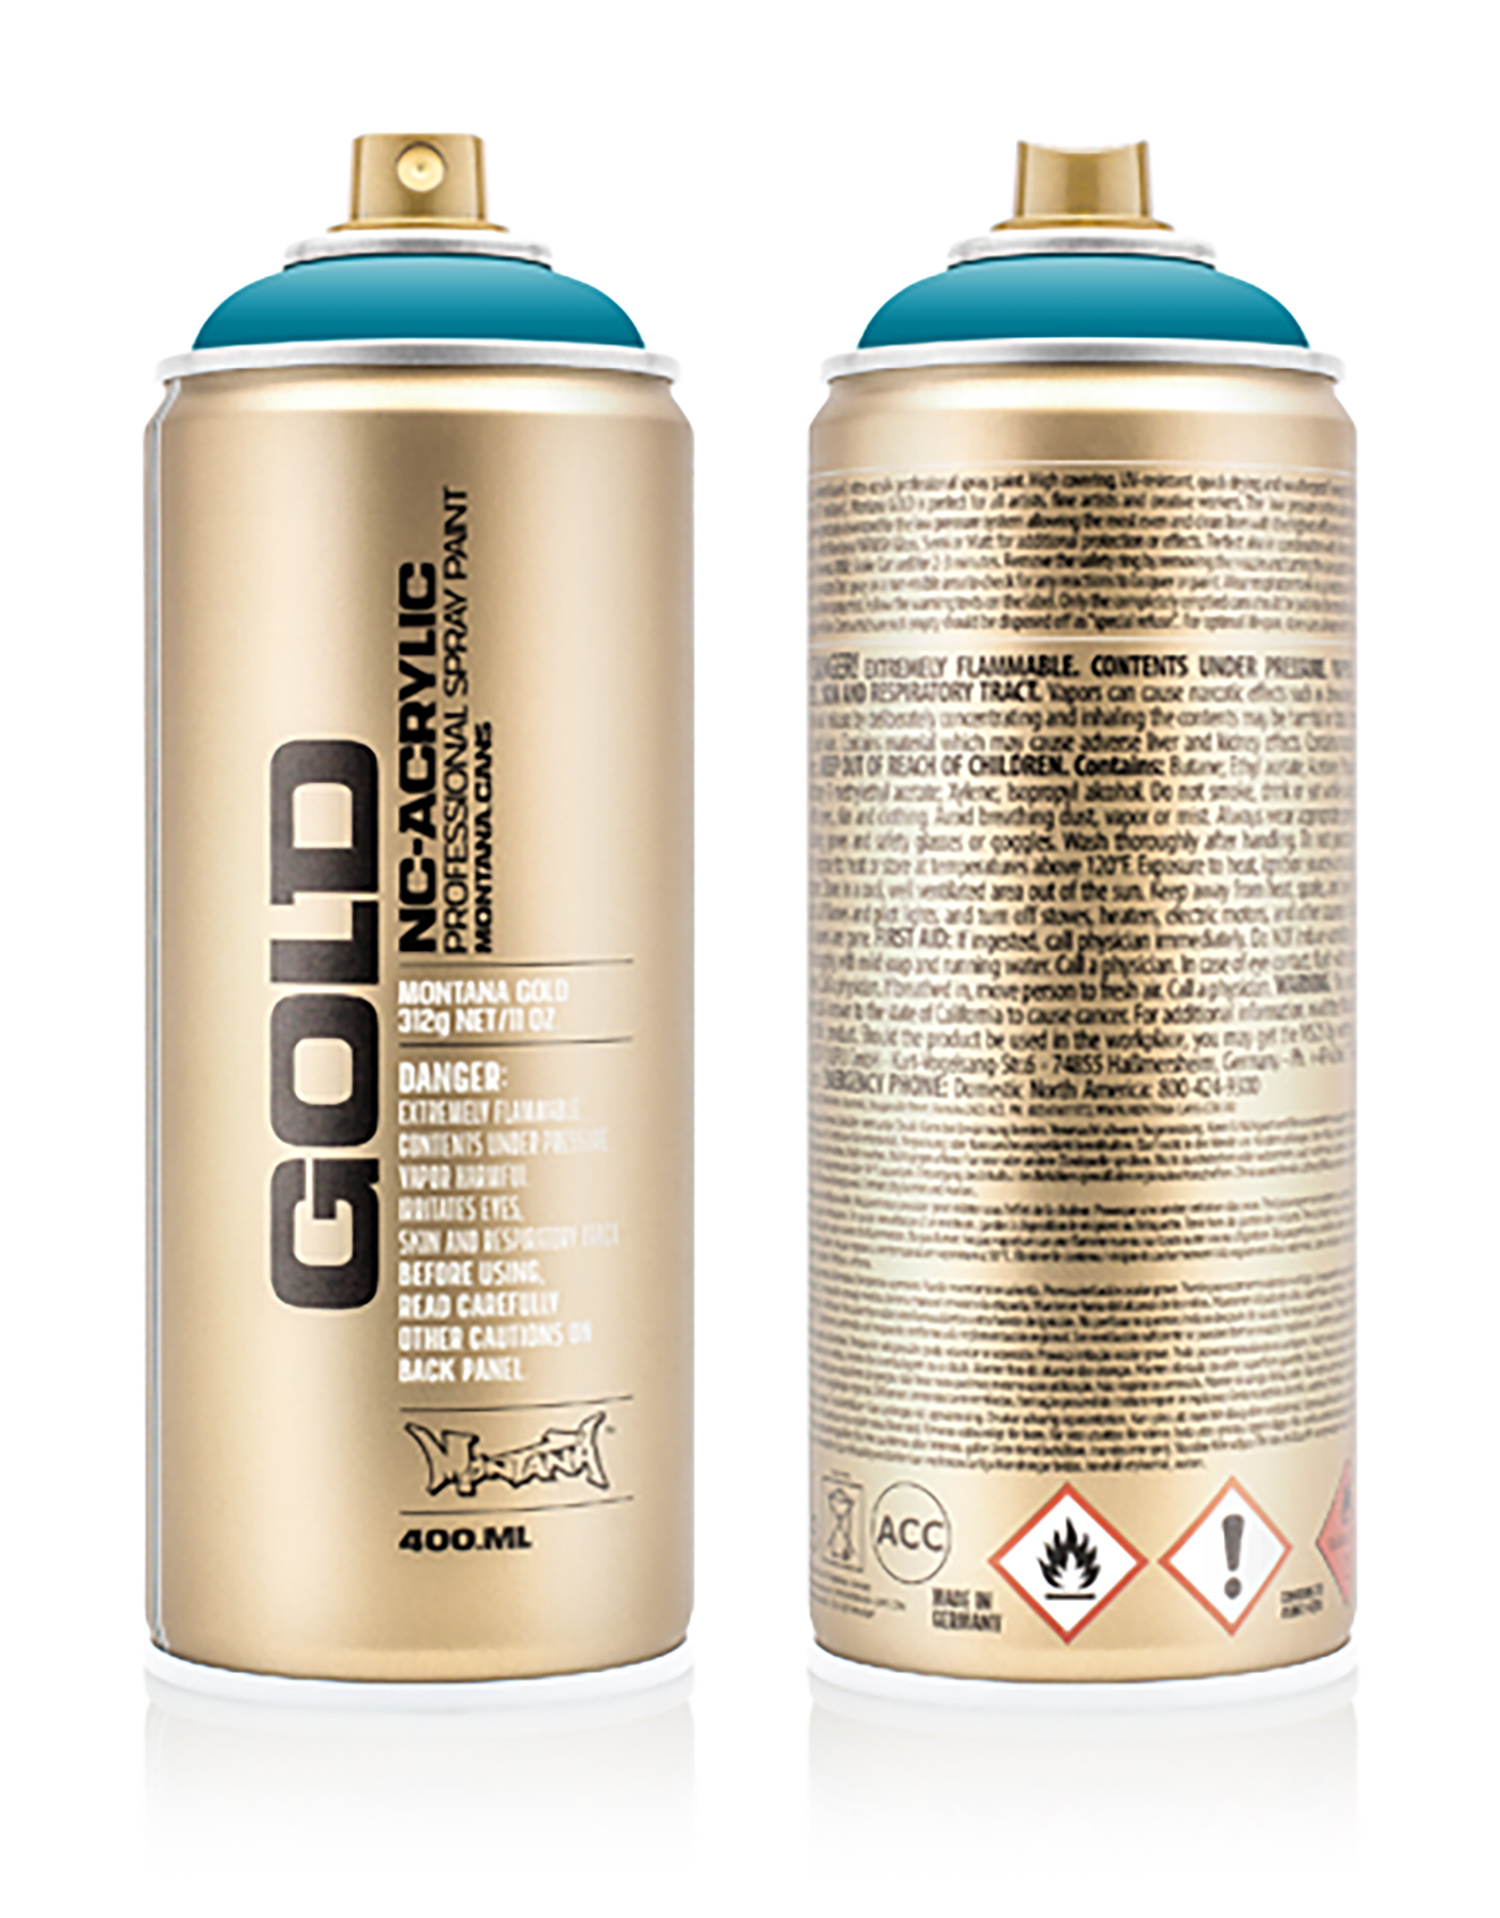 MONTANA-GOLD-SPRAY-400ML-G-6260